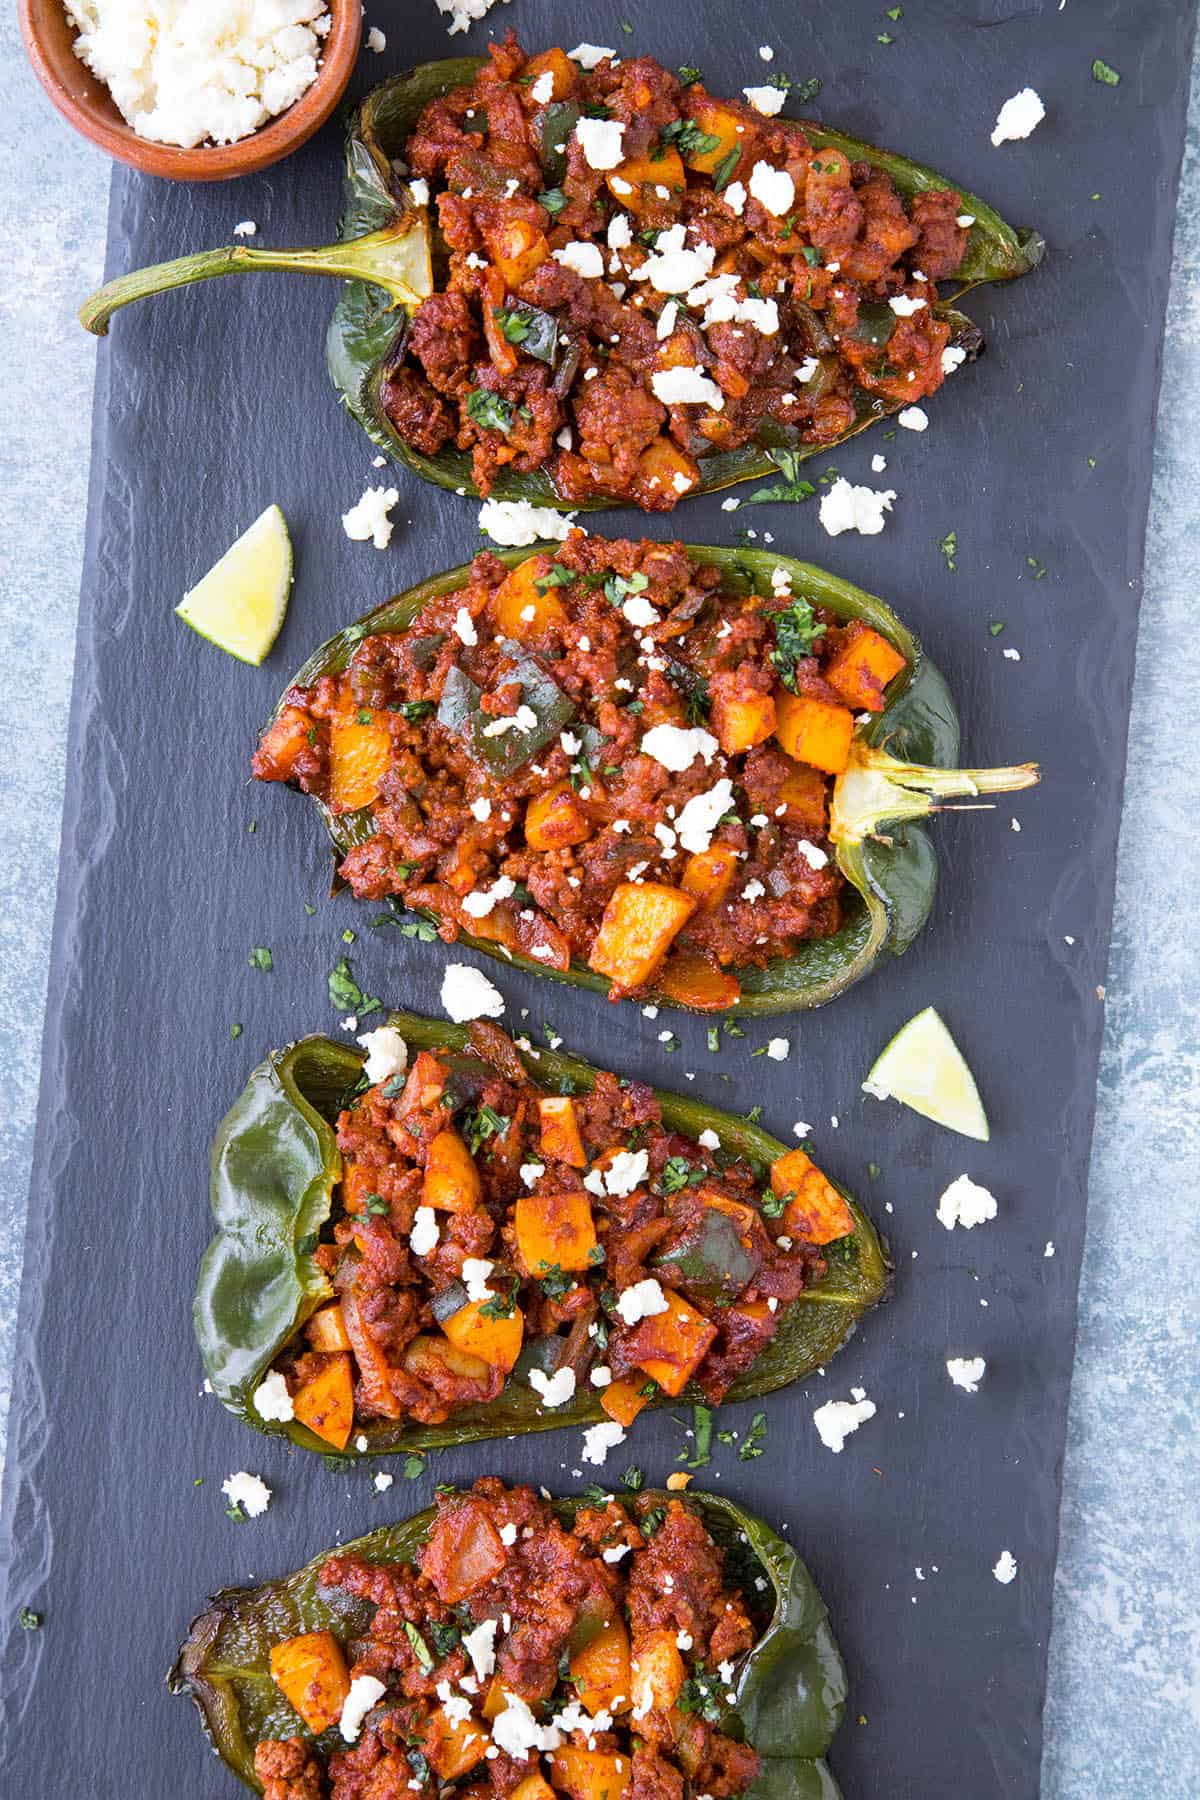 Picadillo Stuffed Poblano Peppers - This Recipe Serves 4